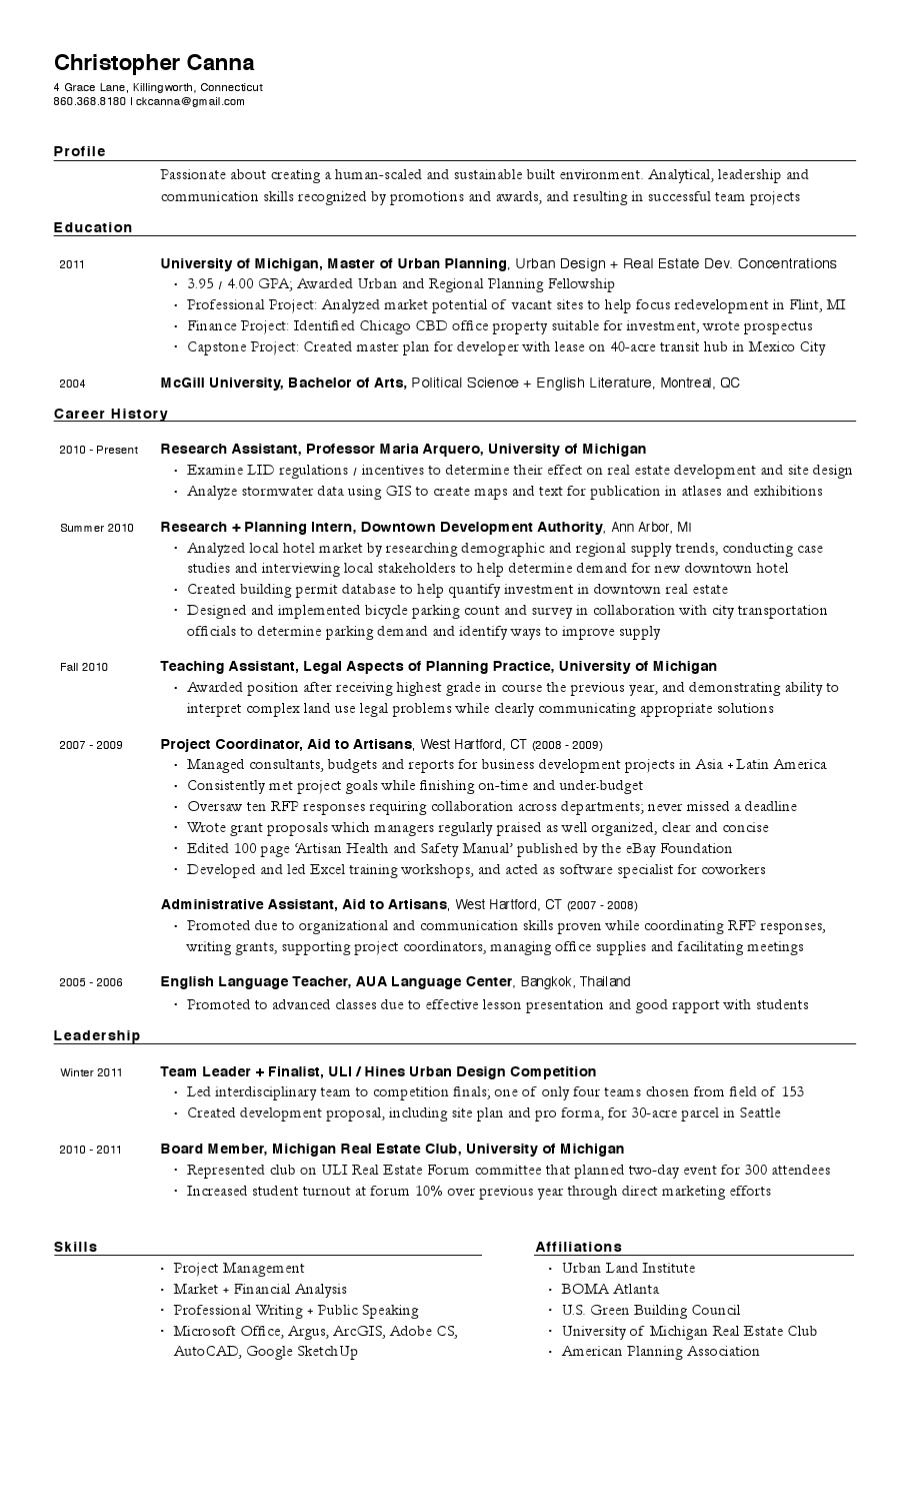 chris canna resume by christopher canna